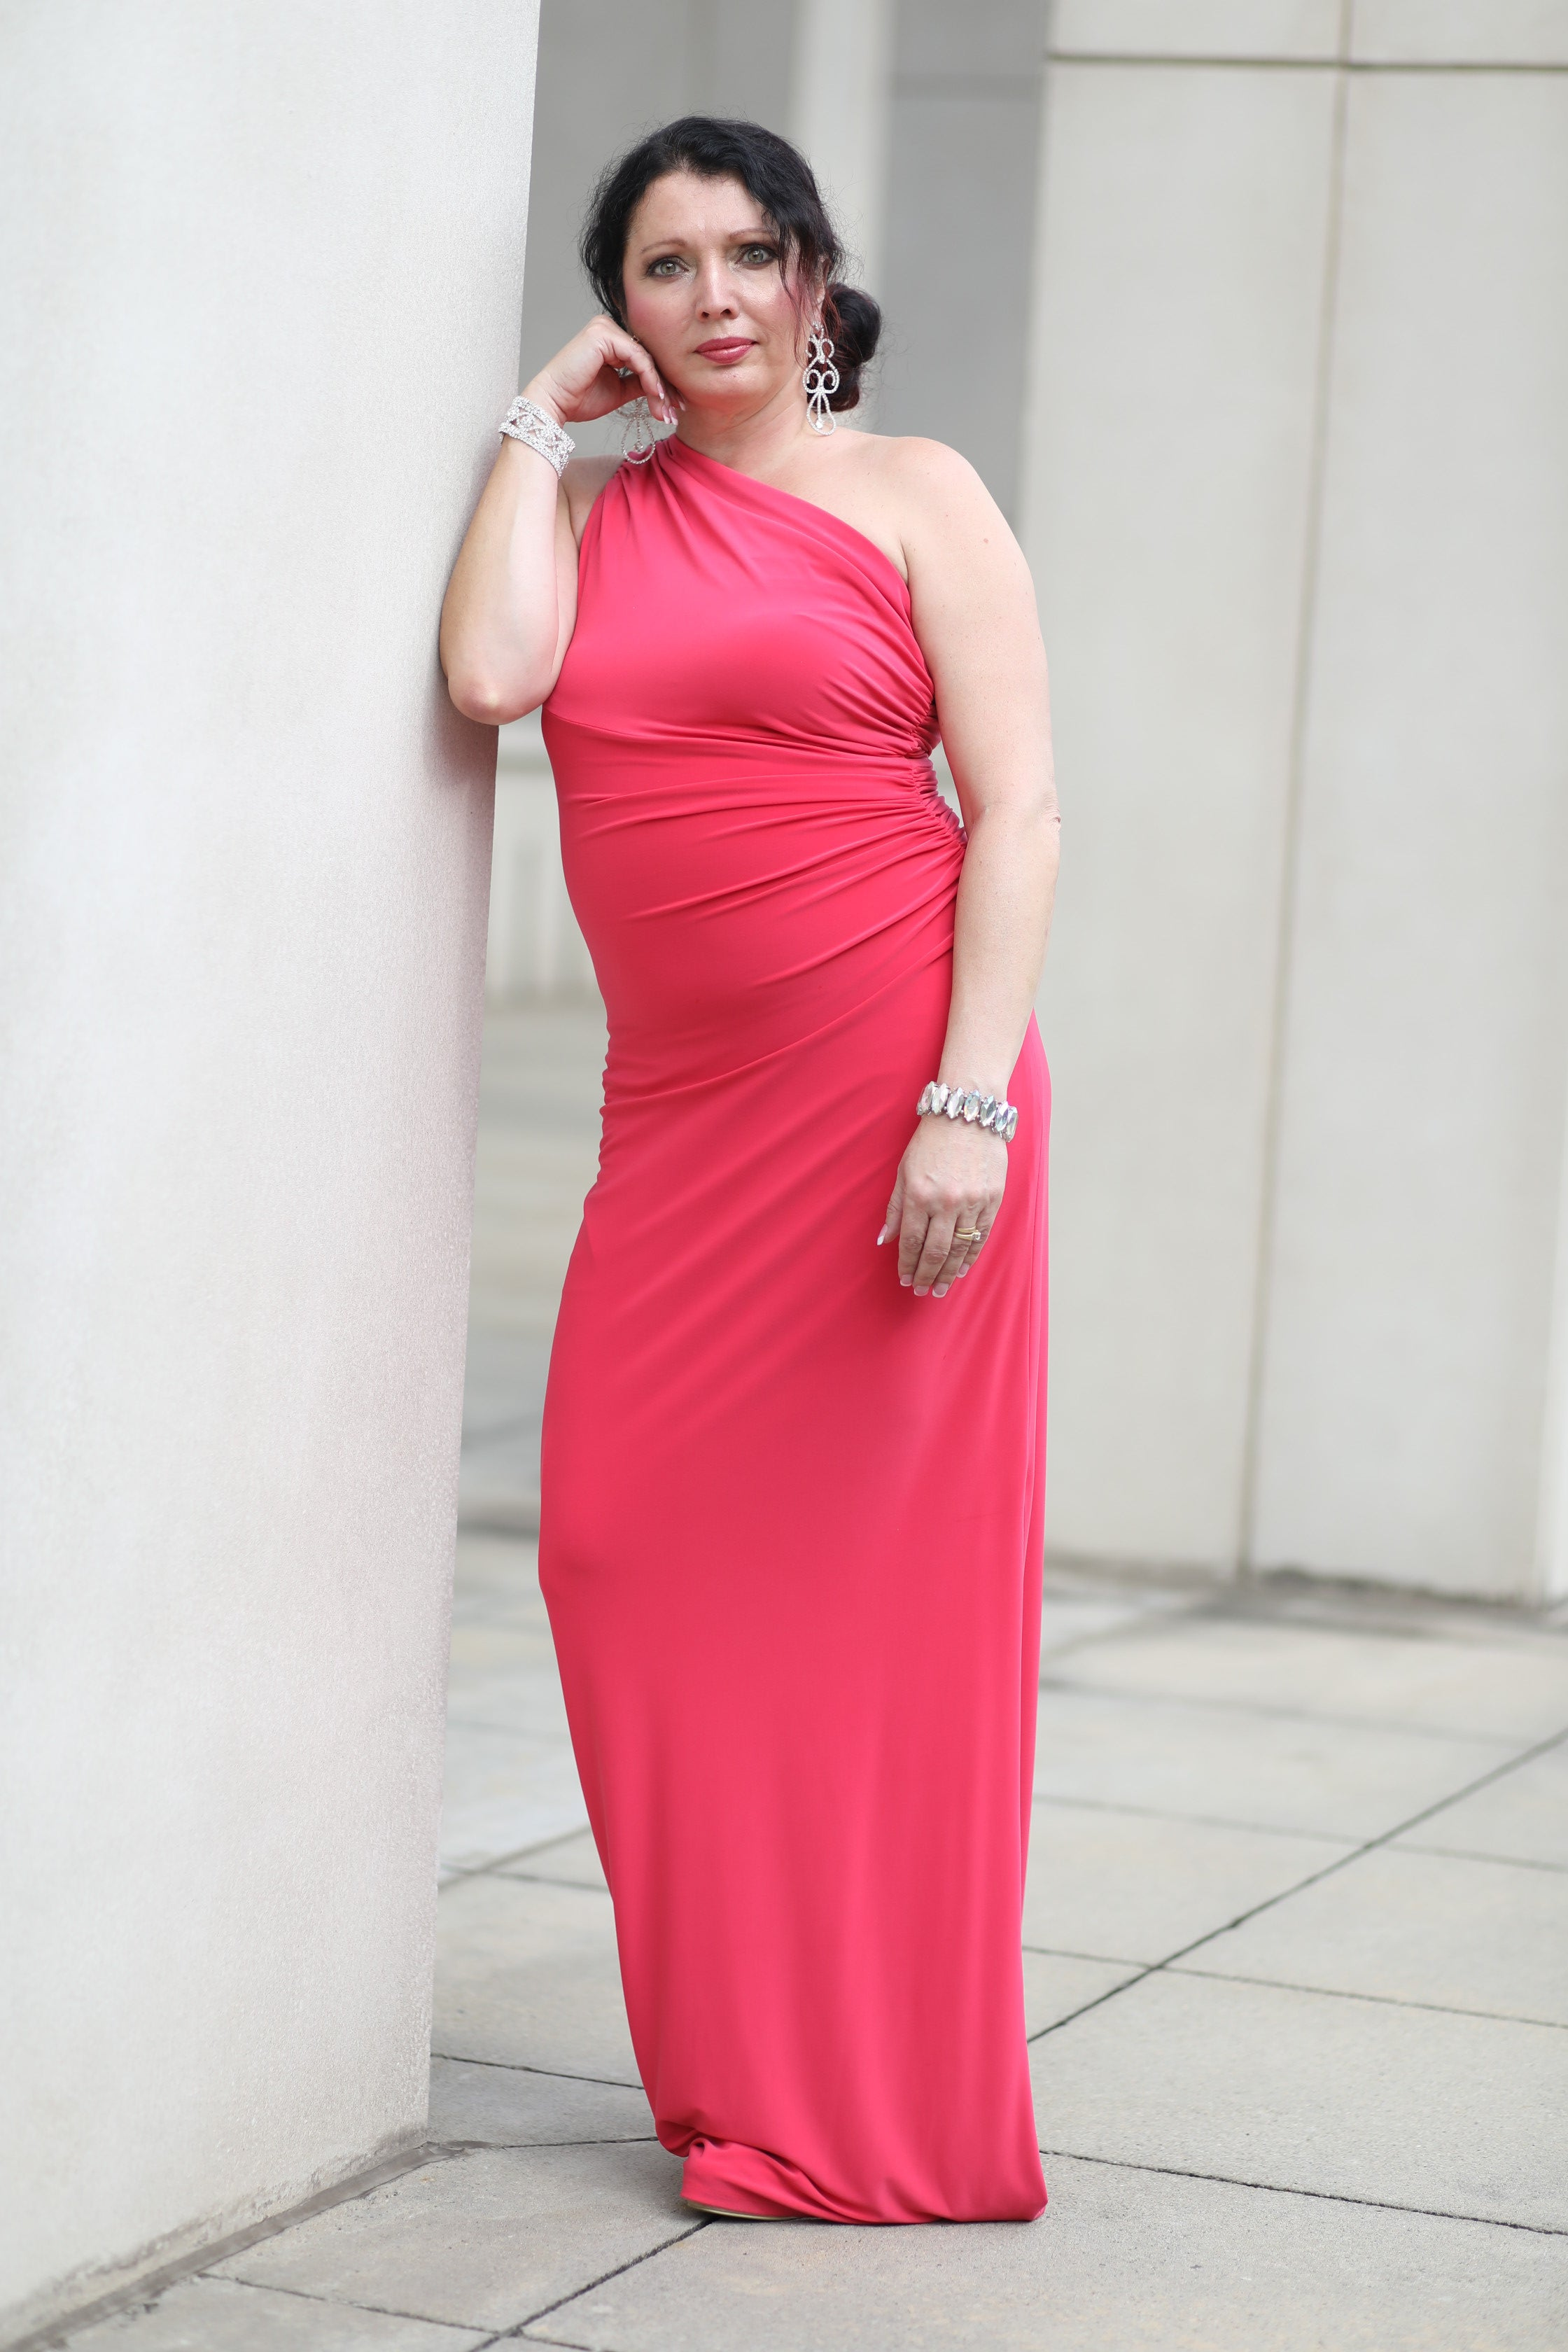 Pink Maxi One Shoulder Asymmetrical Dress by Ralph Lauren, Size 8 FOR RENT $89